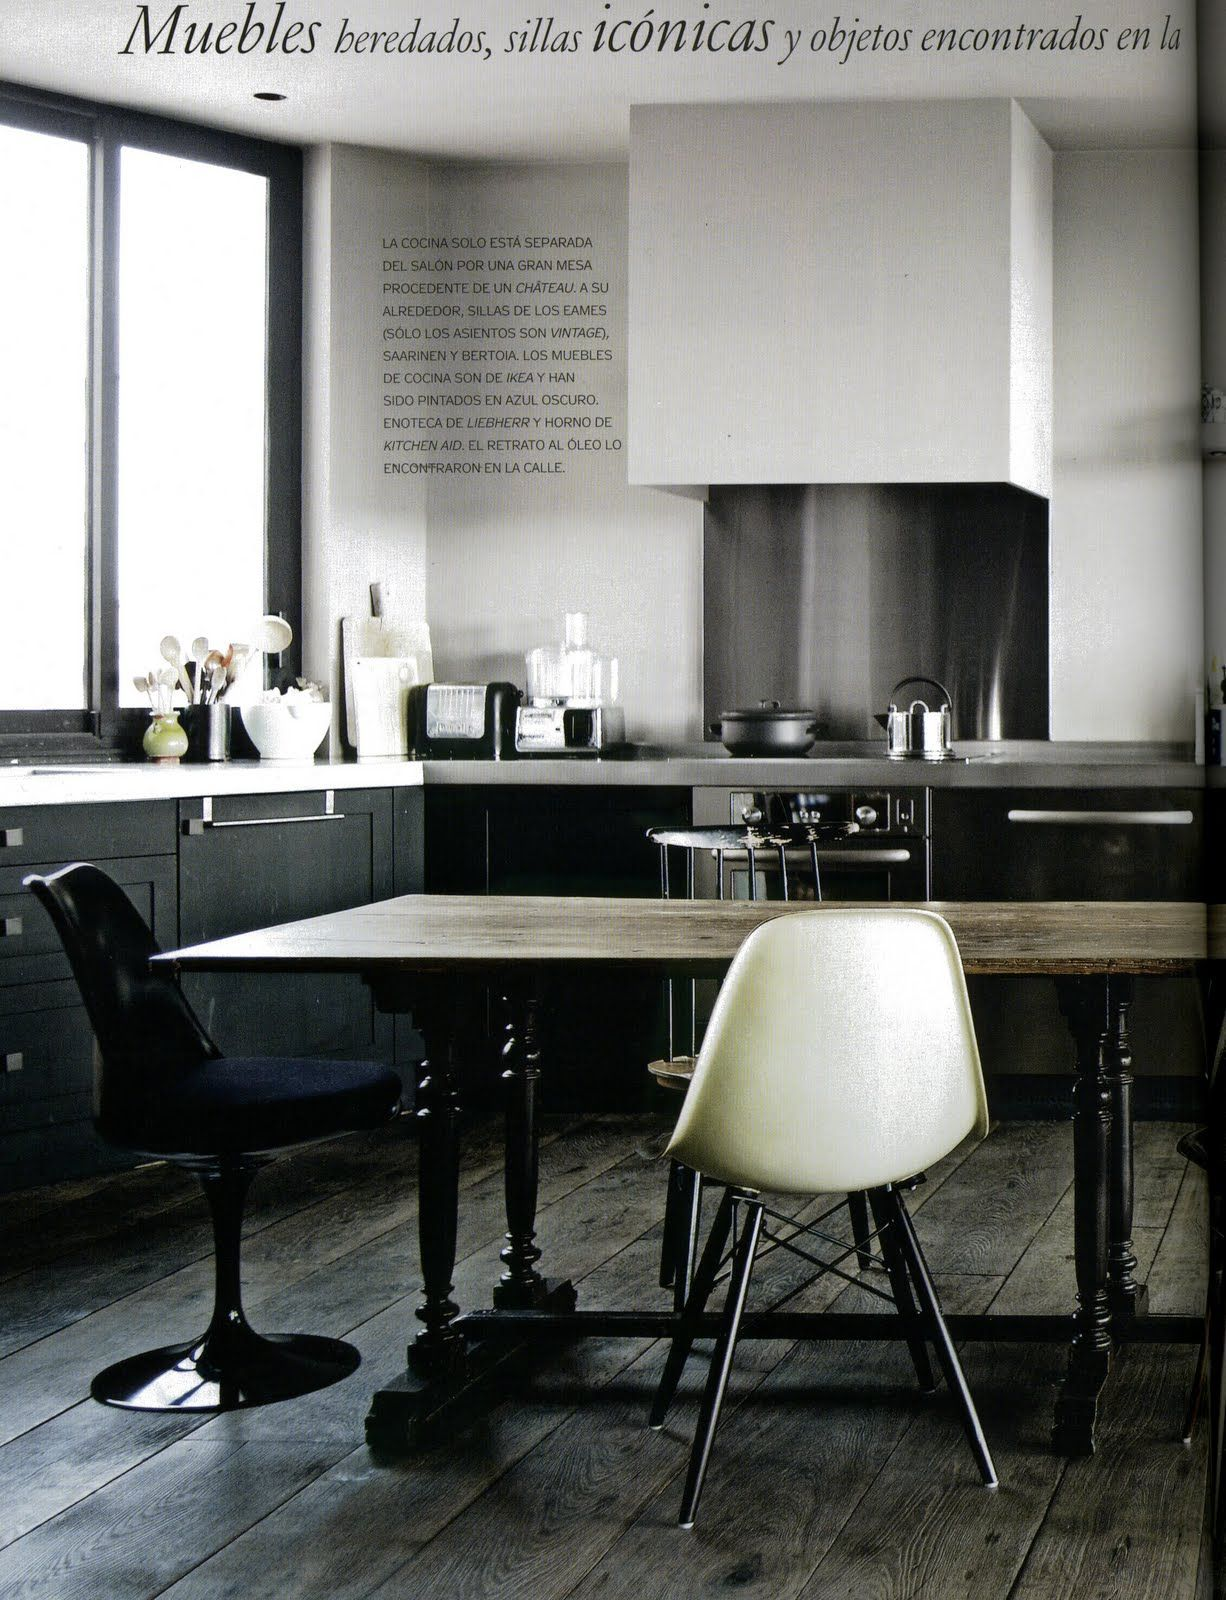 Aesthetically Thinking Dinner Anyone Kitchens Pinterest  # Muebles Para Bijou